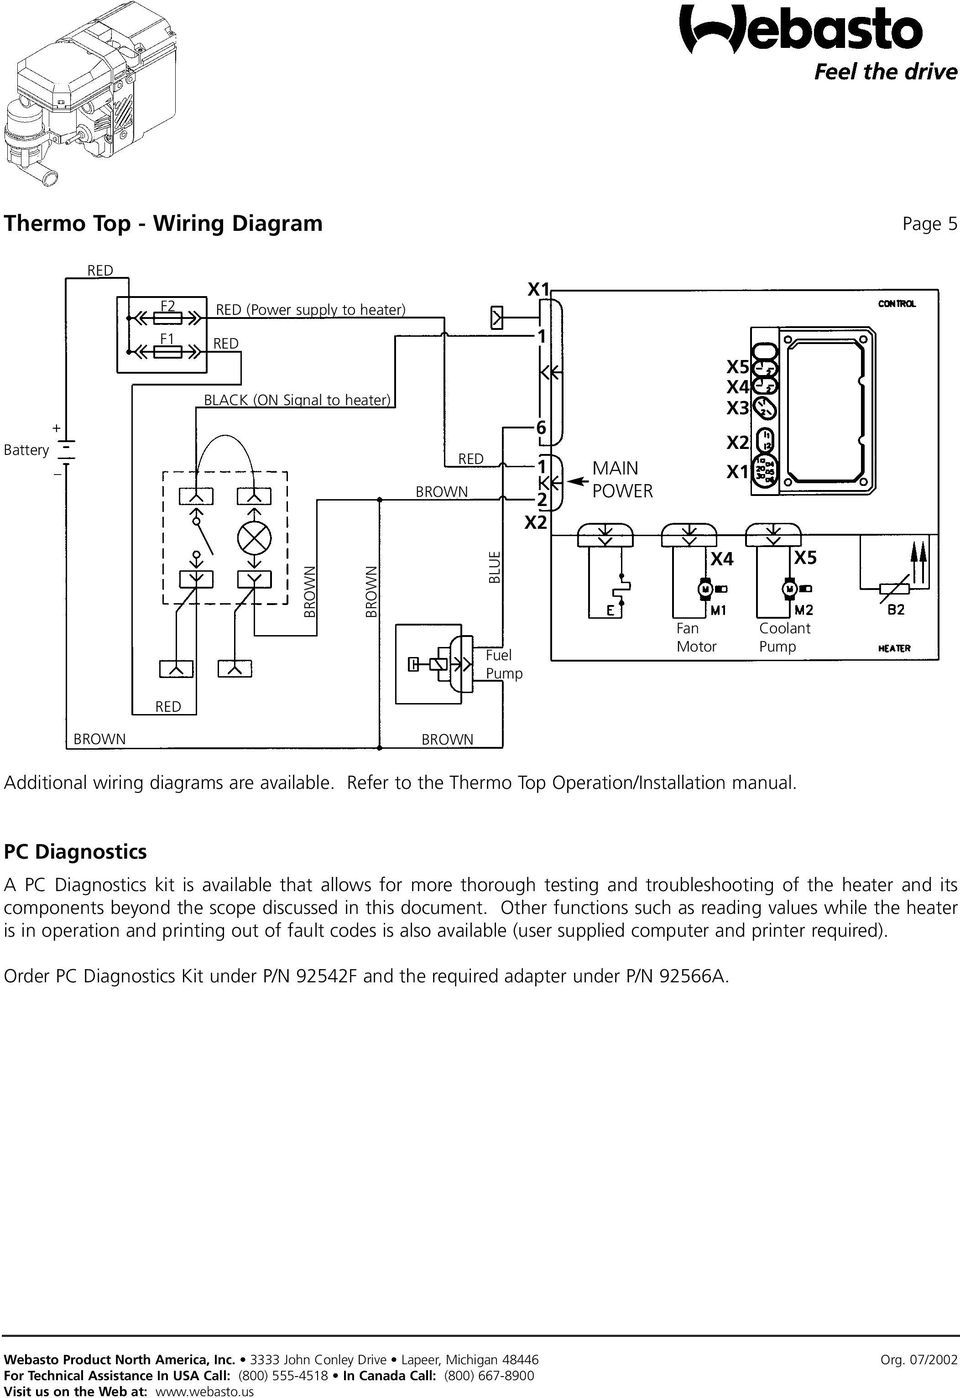 webasto heater wiring diagram thermo top troubleshooting tree pdf free download  thermo top troubleshooting tree pdf